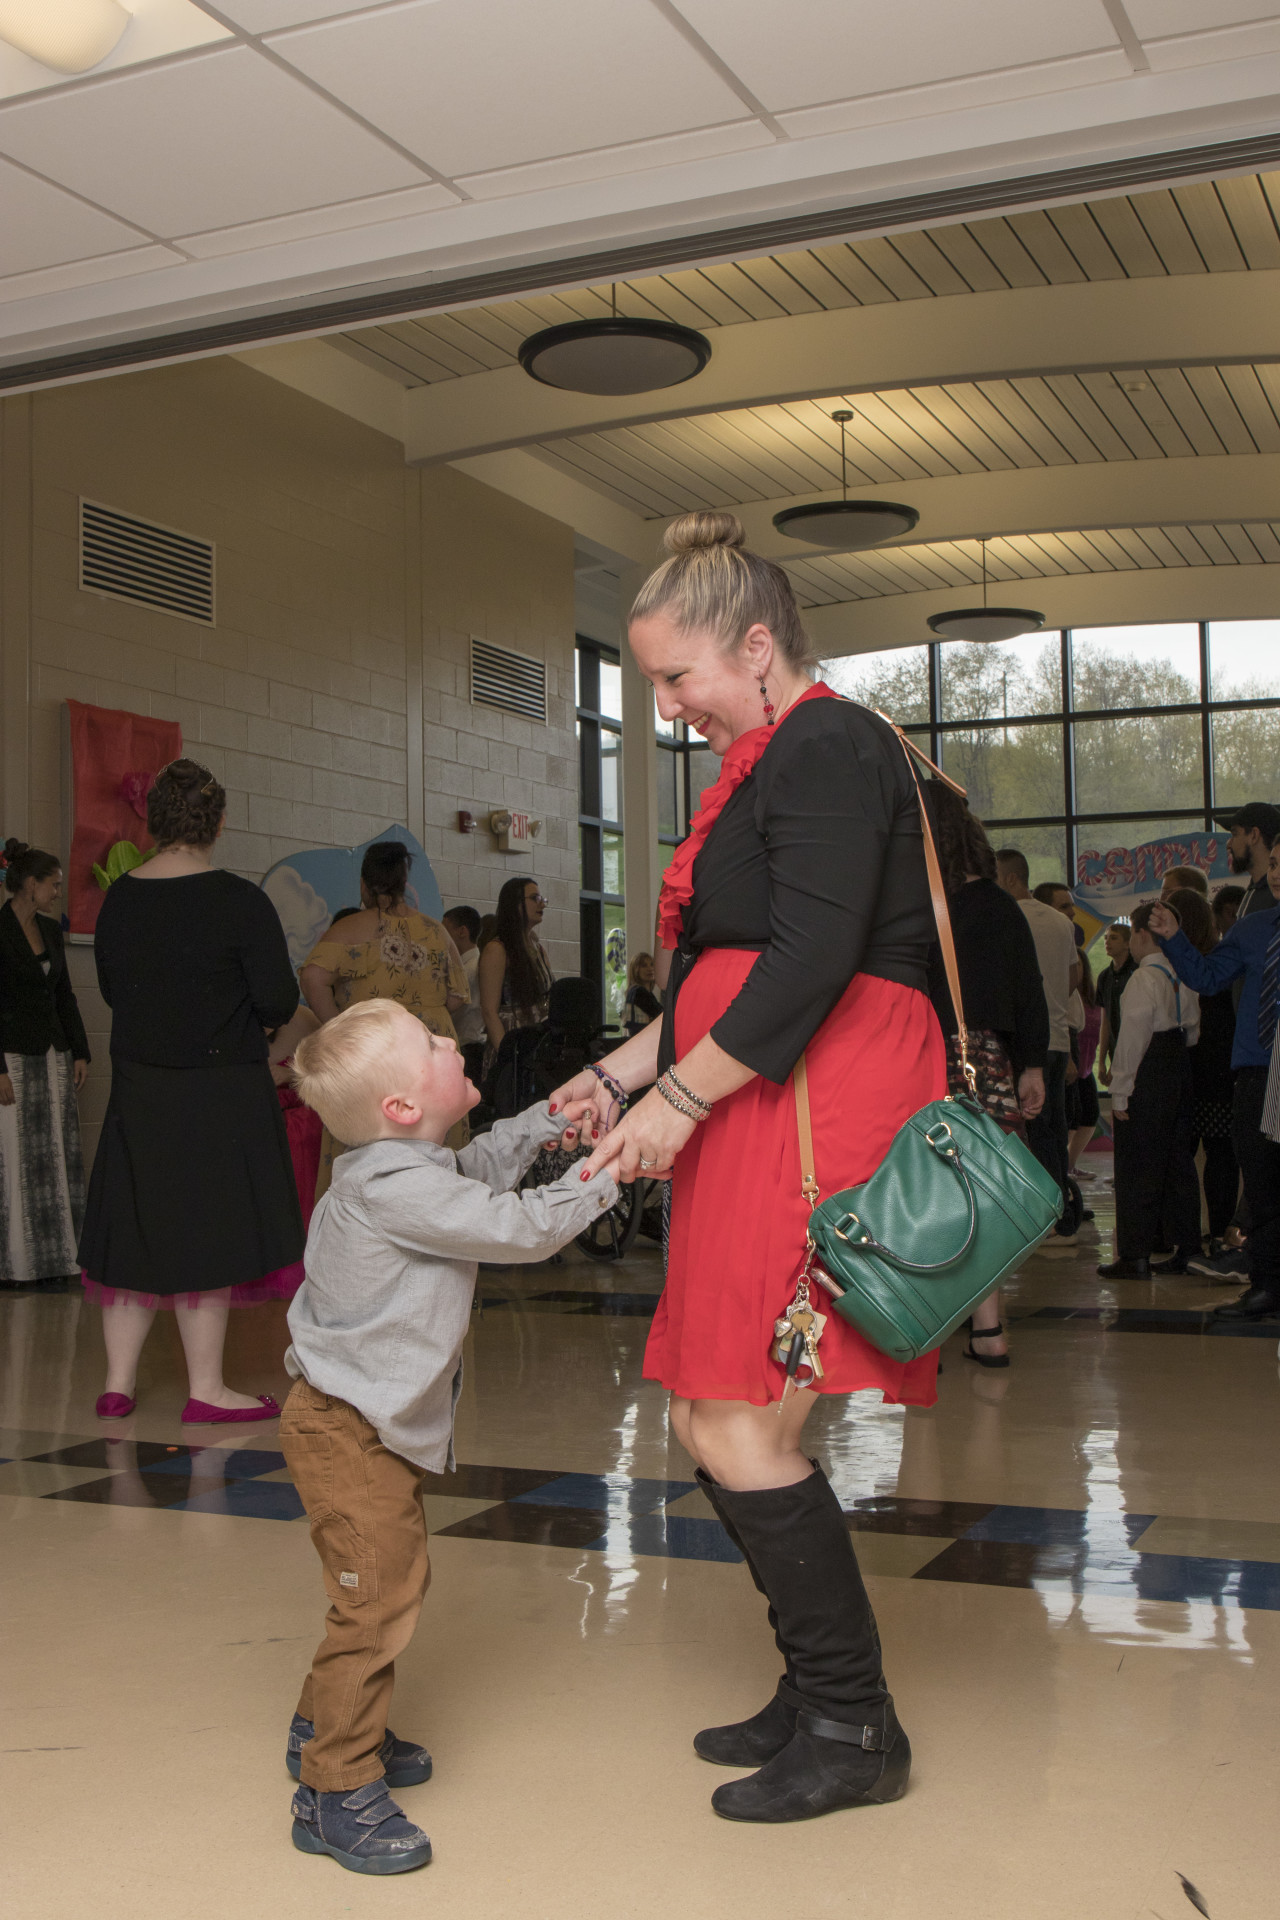 2018 Prom Event  87  JPG 2NrmD256 - Dance, Dance, Dance! - Take a Look Tuesday